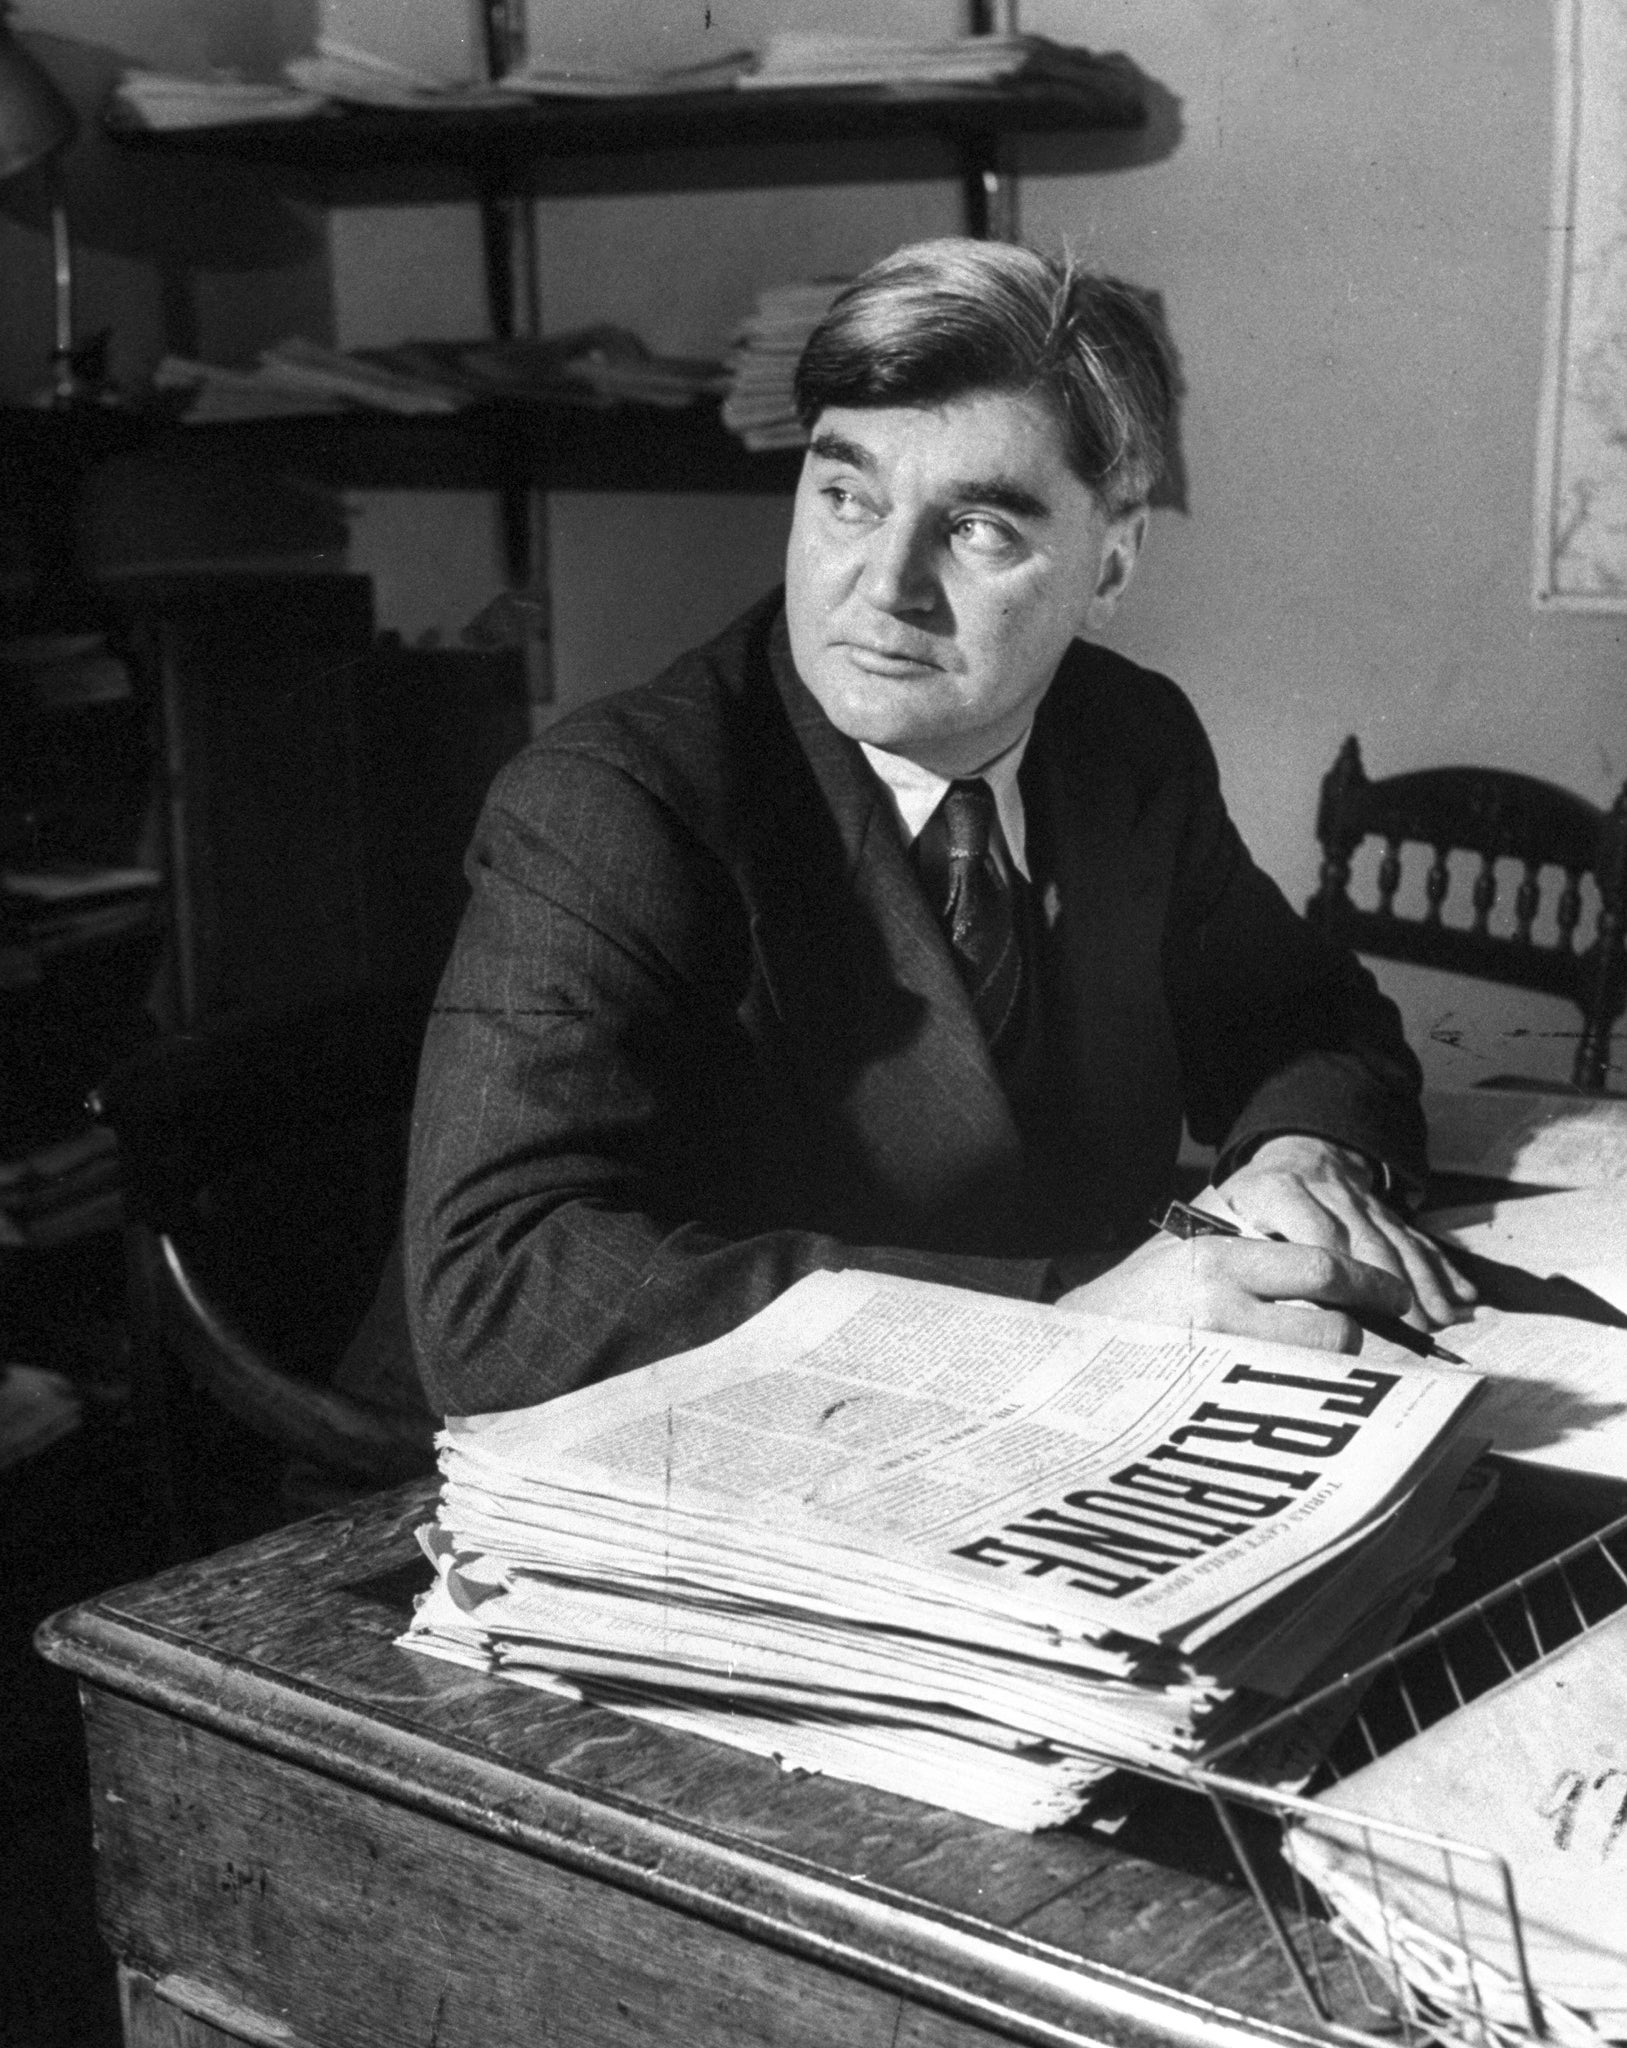 From the NS archive: What remains of Aneurin Bevan